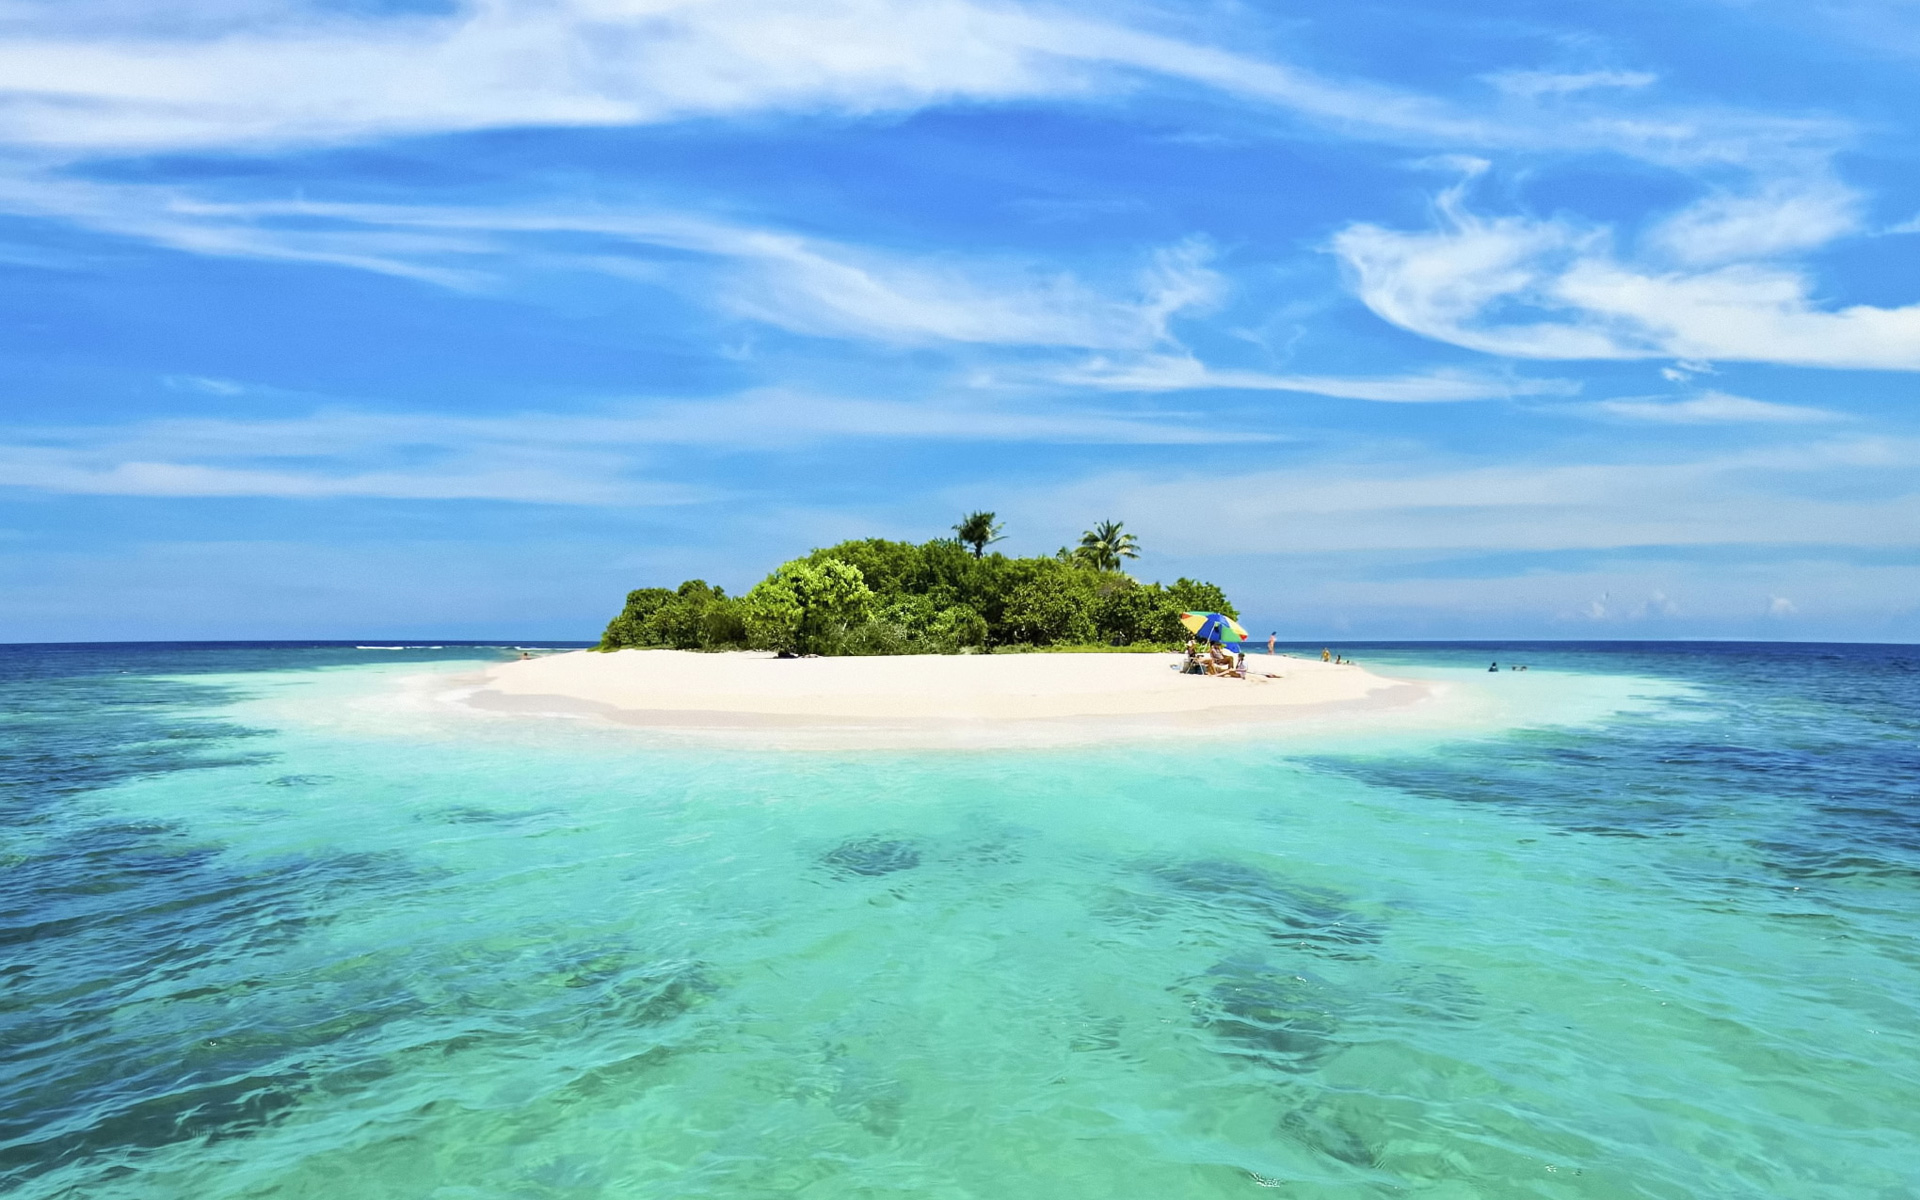 Sandy island in the middle of the ocean wallpaper - Beach Wallpapers